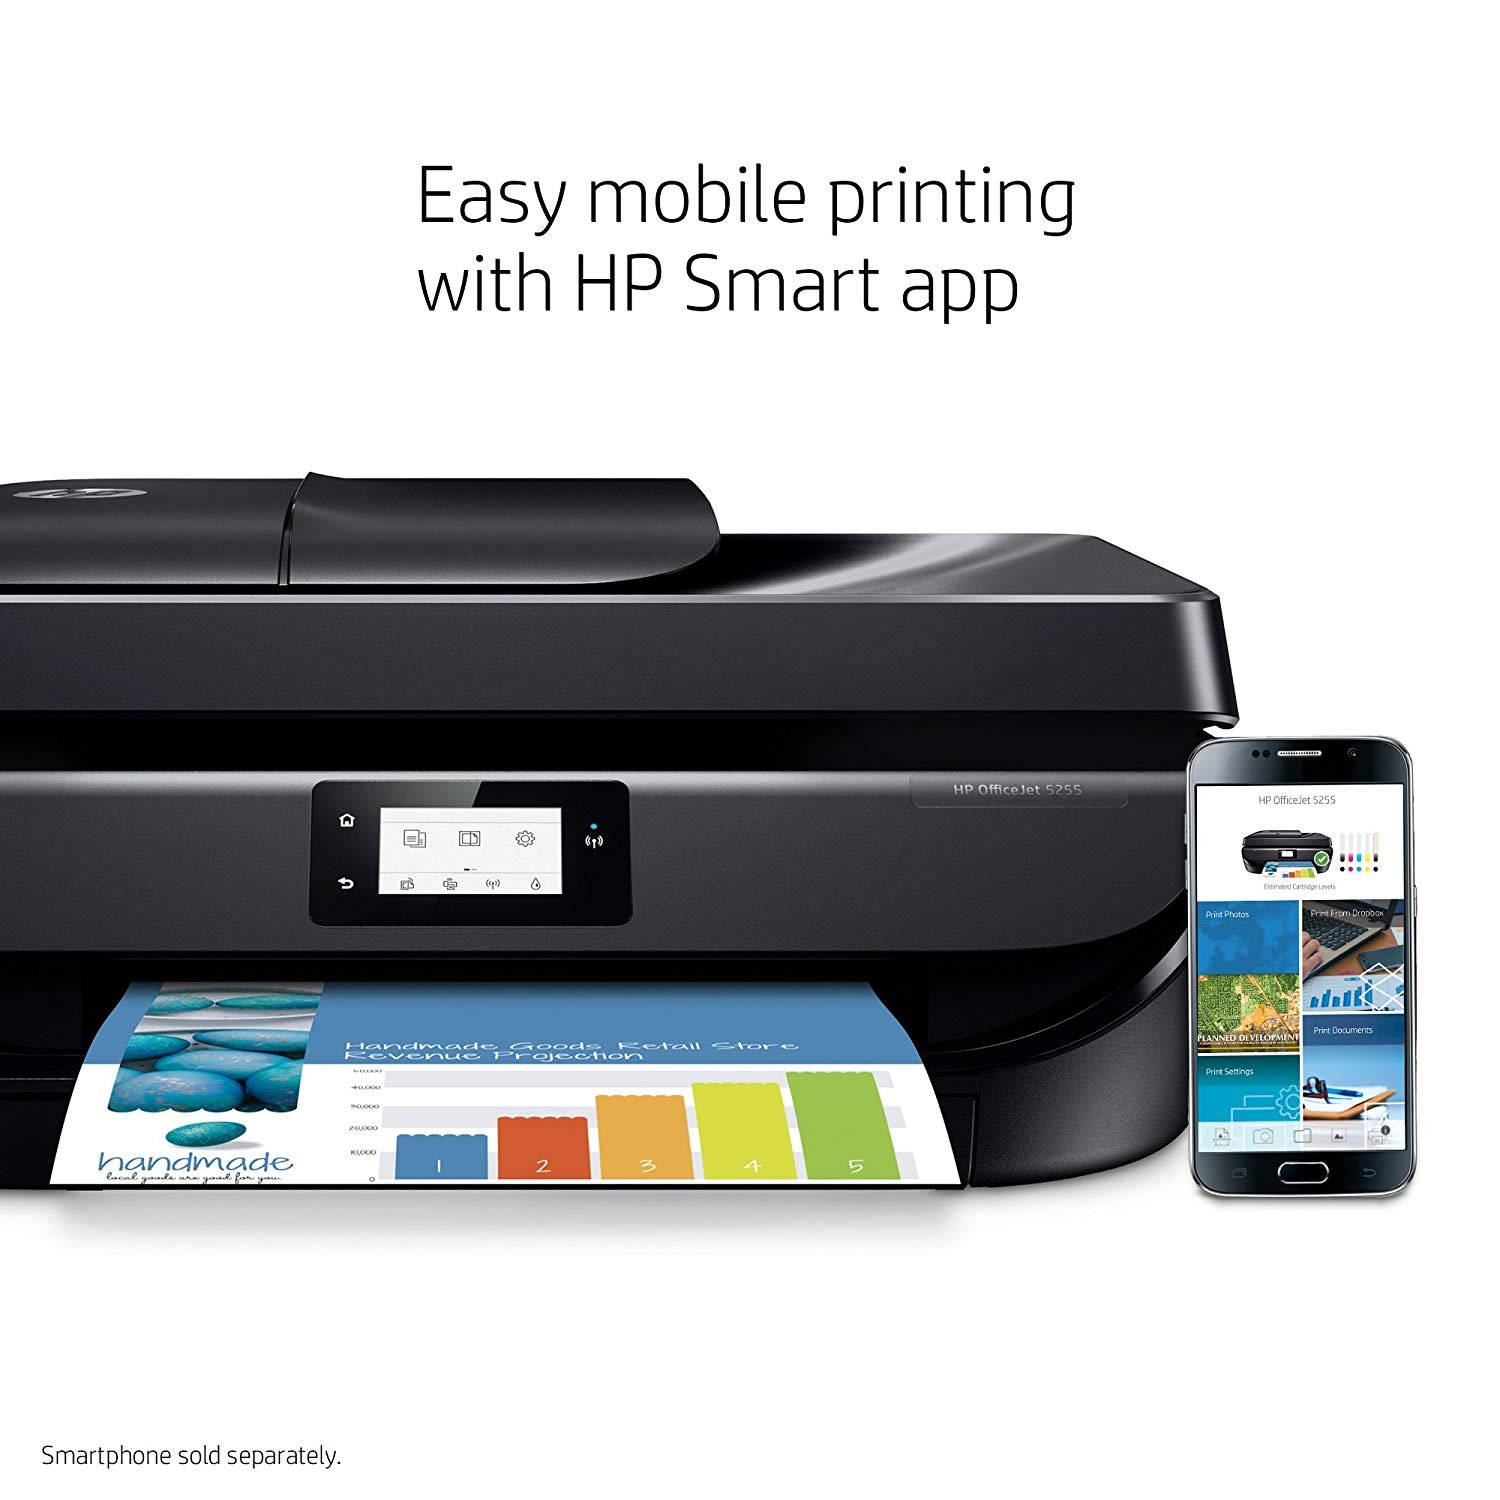 Officejet 5255 Wireless All In One Printer Unboxed